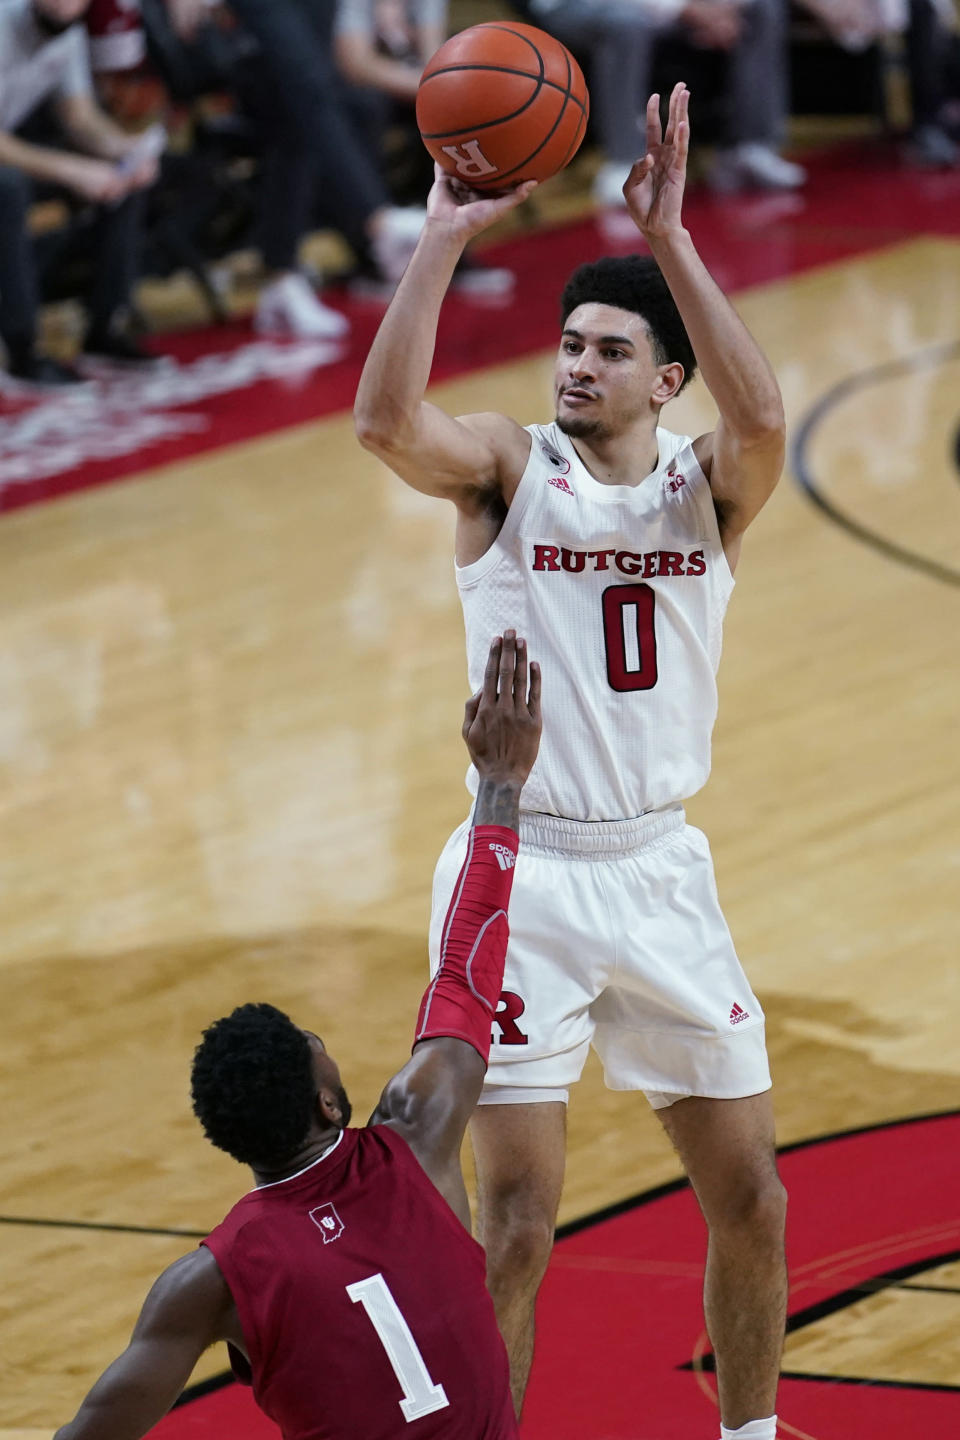 Rutgers guard Geo Baker (0) shoots over Indiana guard Al Durham (1) during the second half of an NCAA college basketball game Wednesday, Feb. 24, 2021, in Piscataway, N.J. (AP Photo/Kathy Willens)